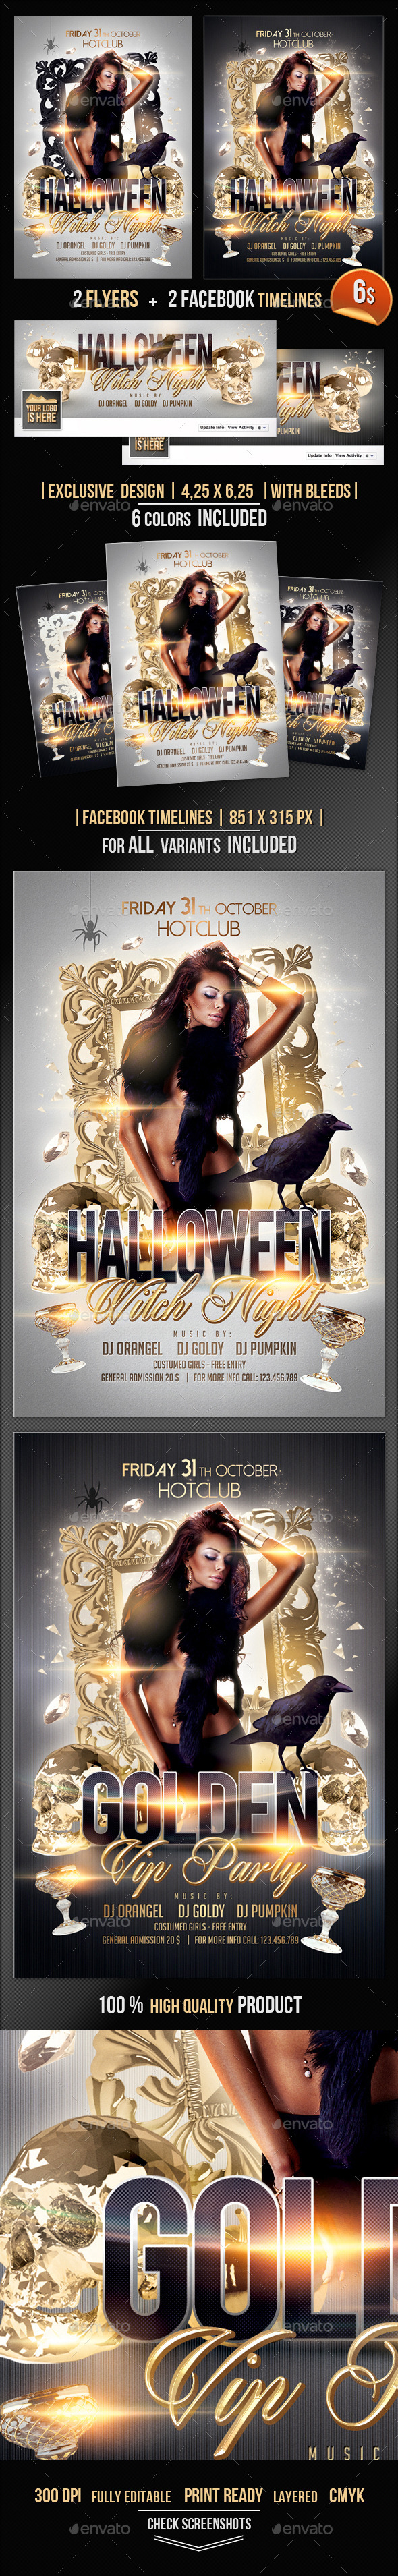 Halloween Witch Night Flyer + Fb Timeline